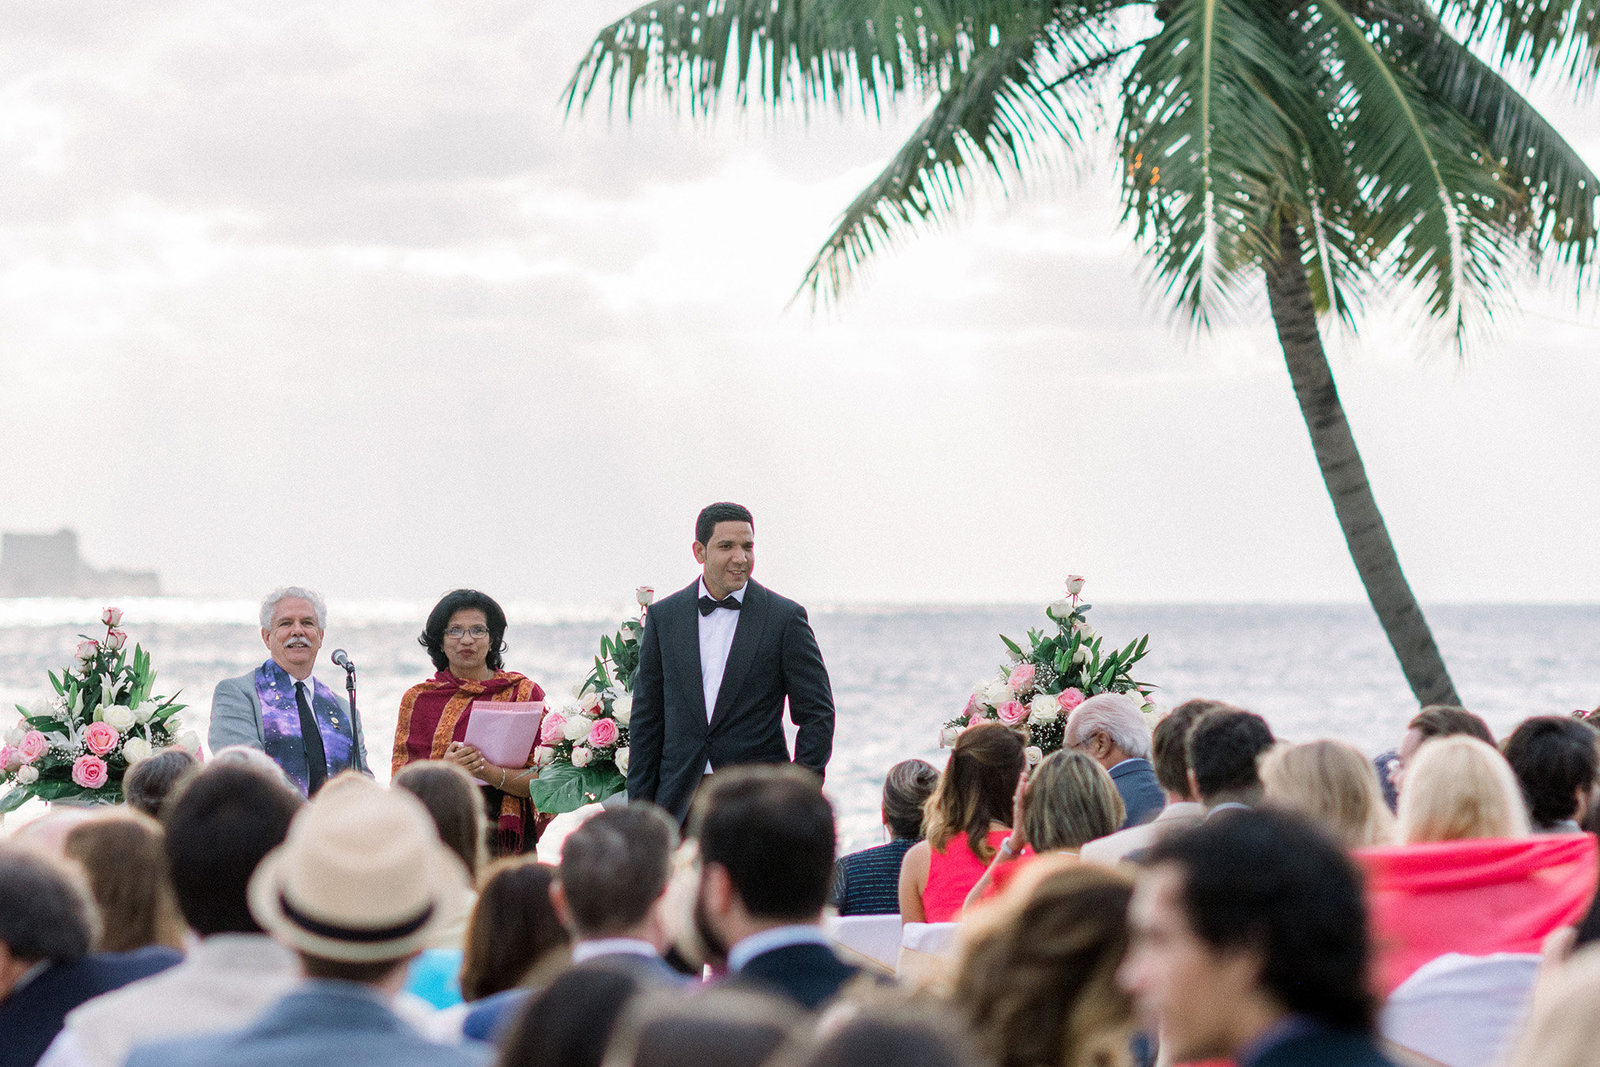 20150328-Pura-Soul-Photo-Cuba-Wedding-42